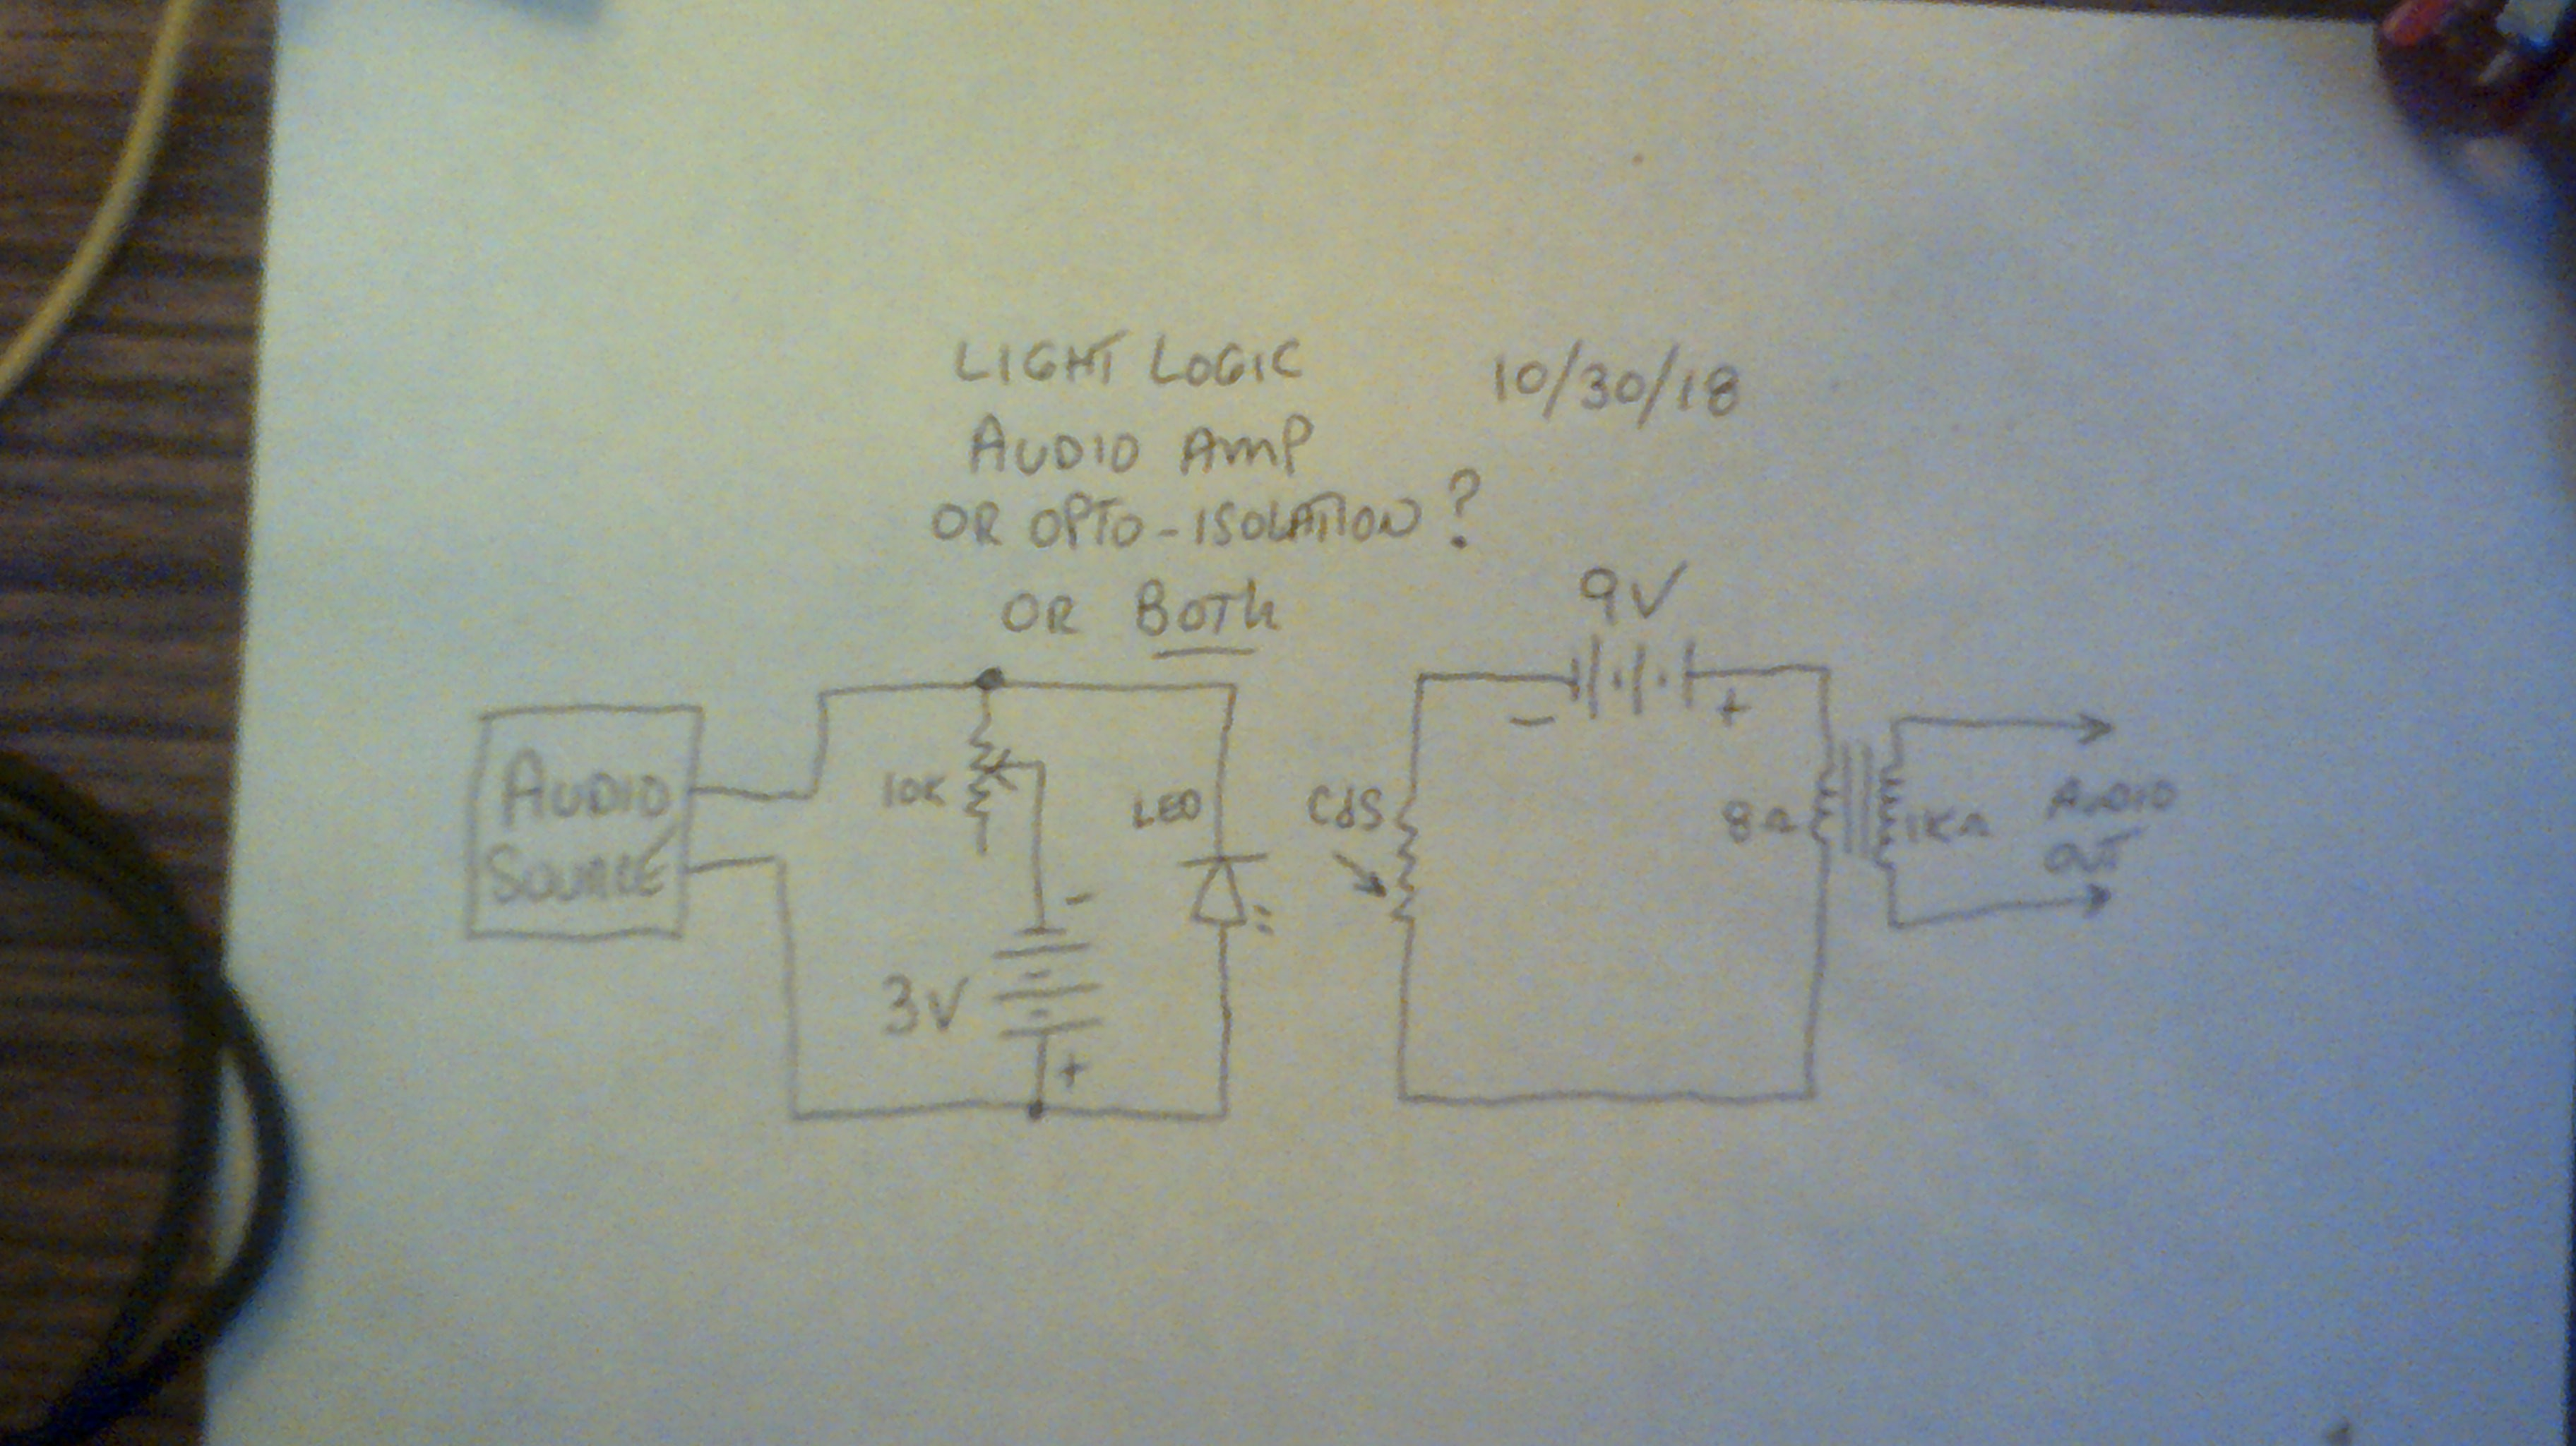 Light Logic Diagram Games There Are Several Passive Preamps Conditioners On The Market But I Want To Mess With This Circuit A Little Then Get Back